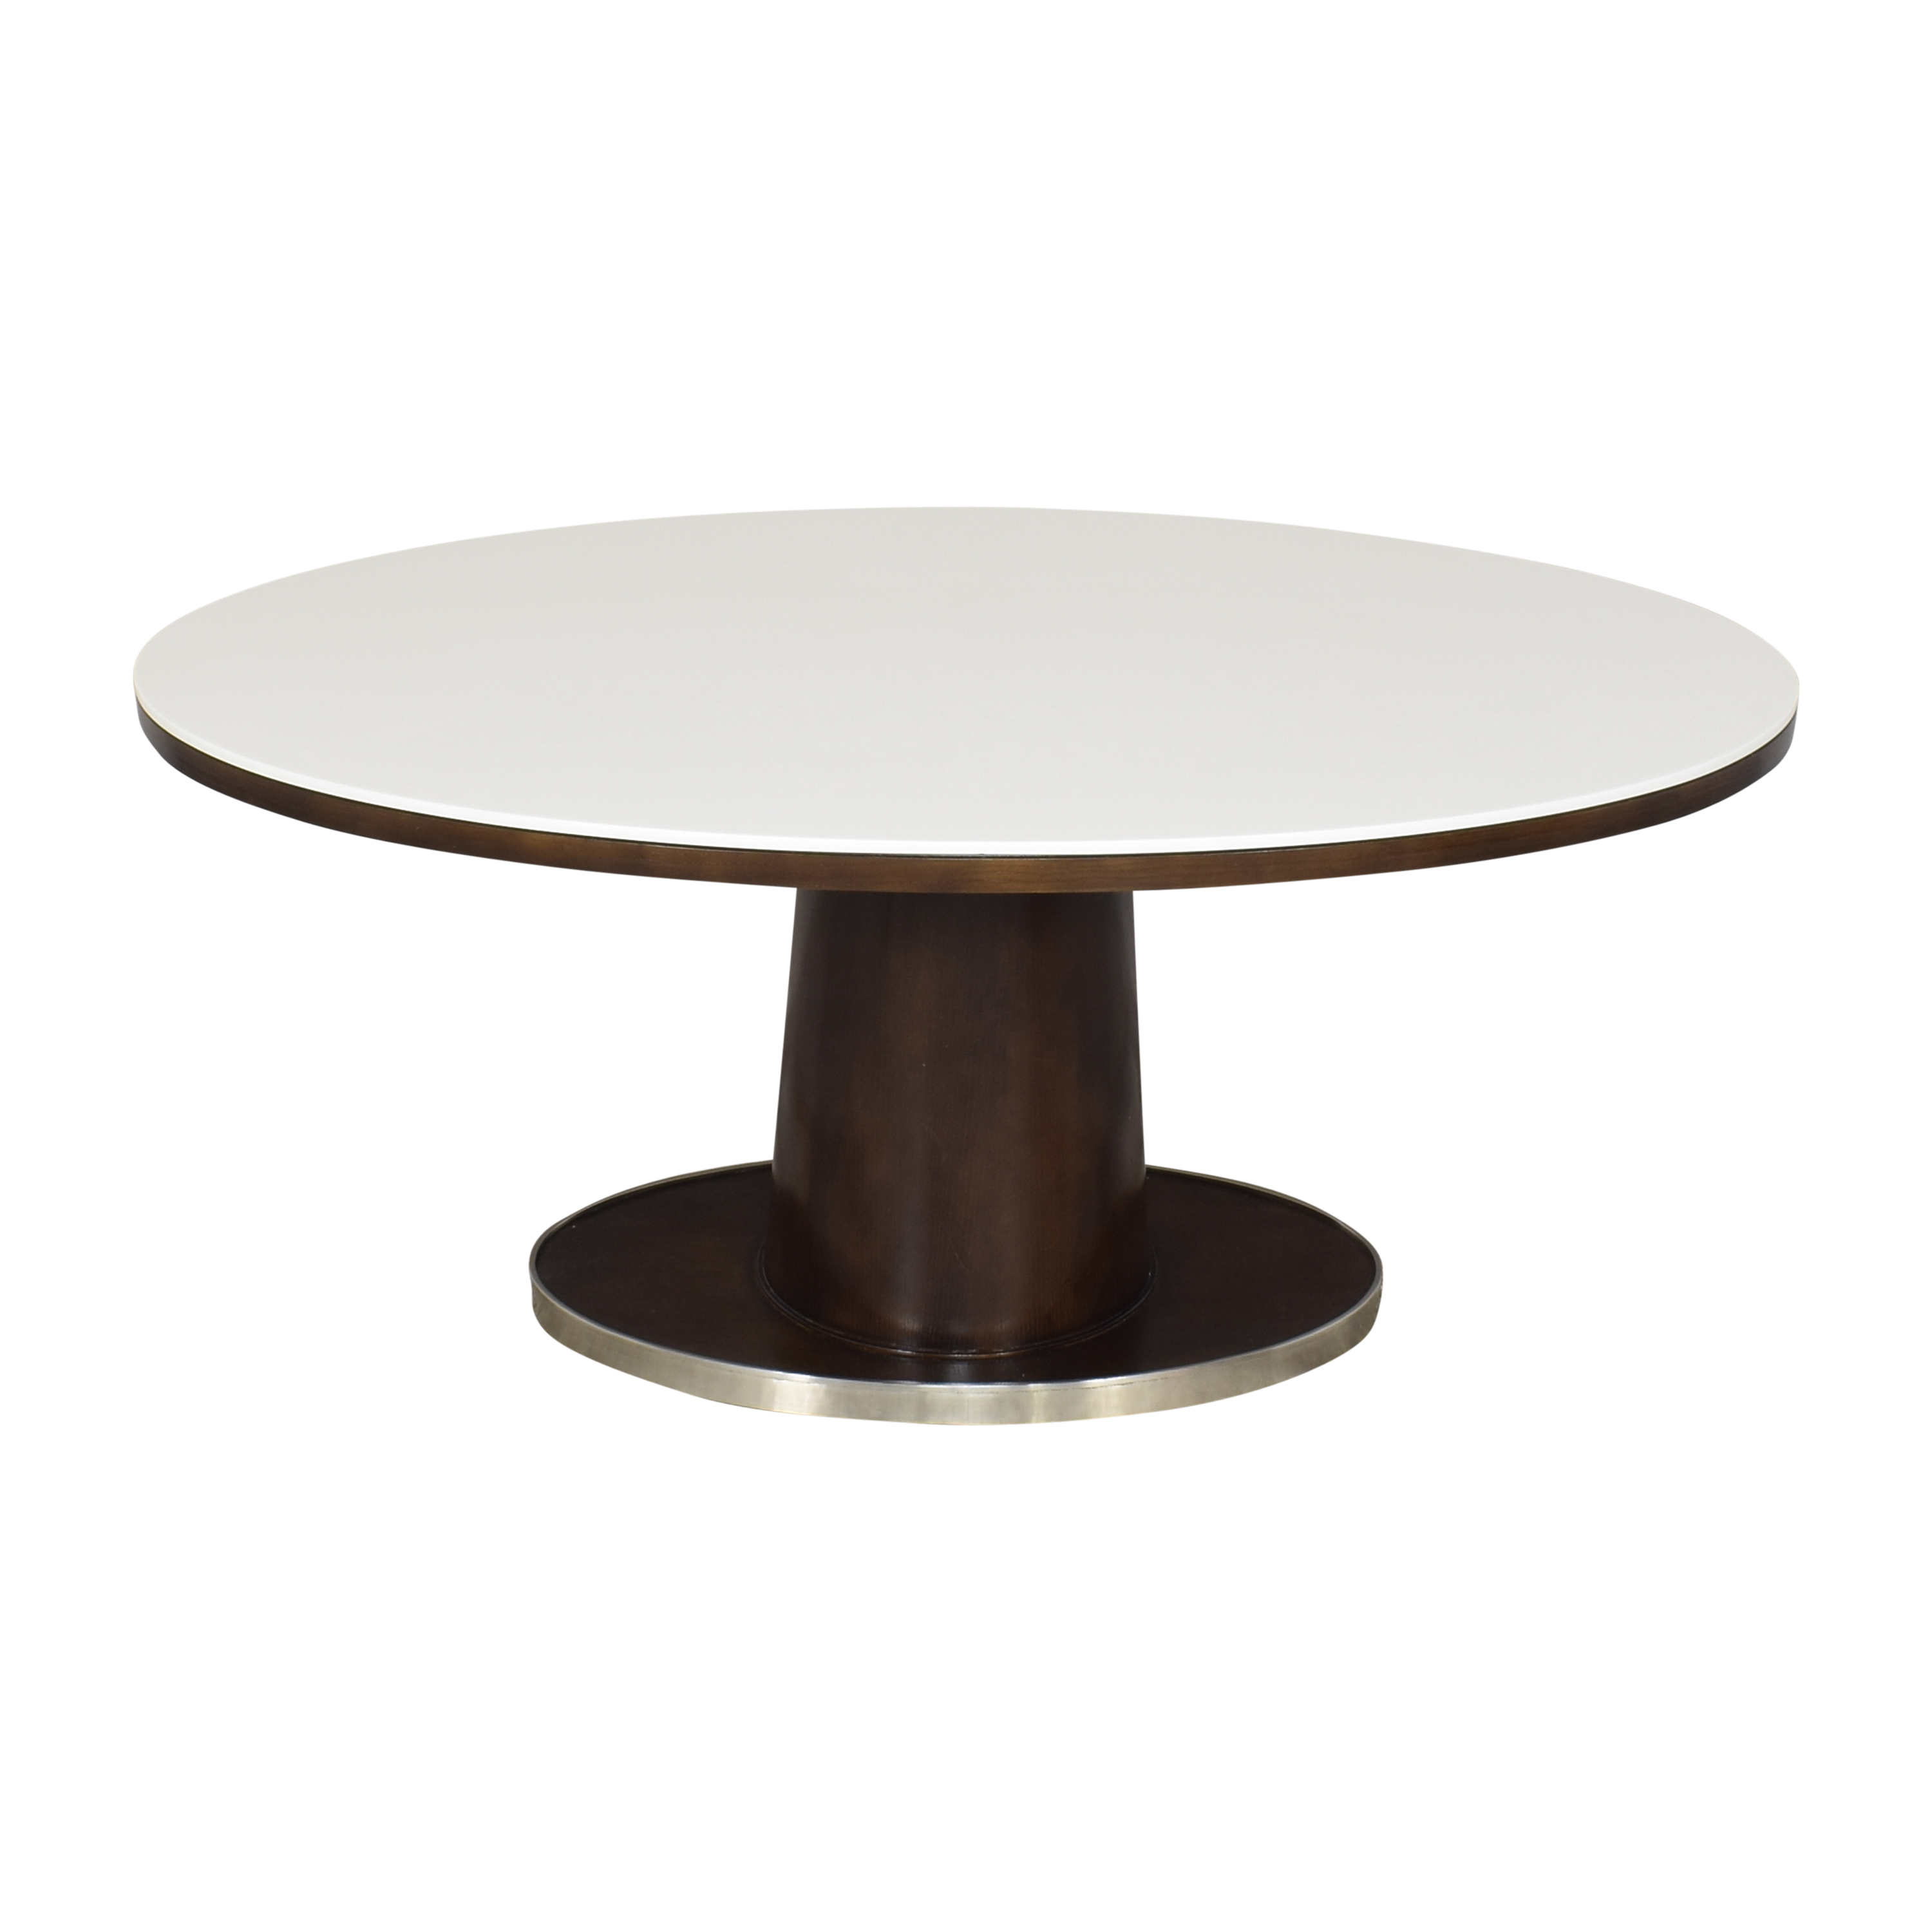 McGuire McGuire Barbara Barry Classic Oval Pedestal Table Dinner Tables